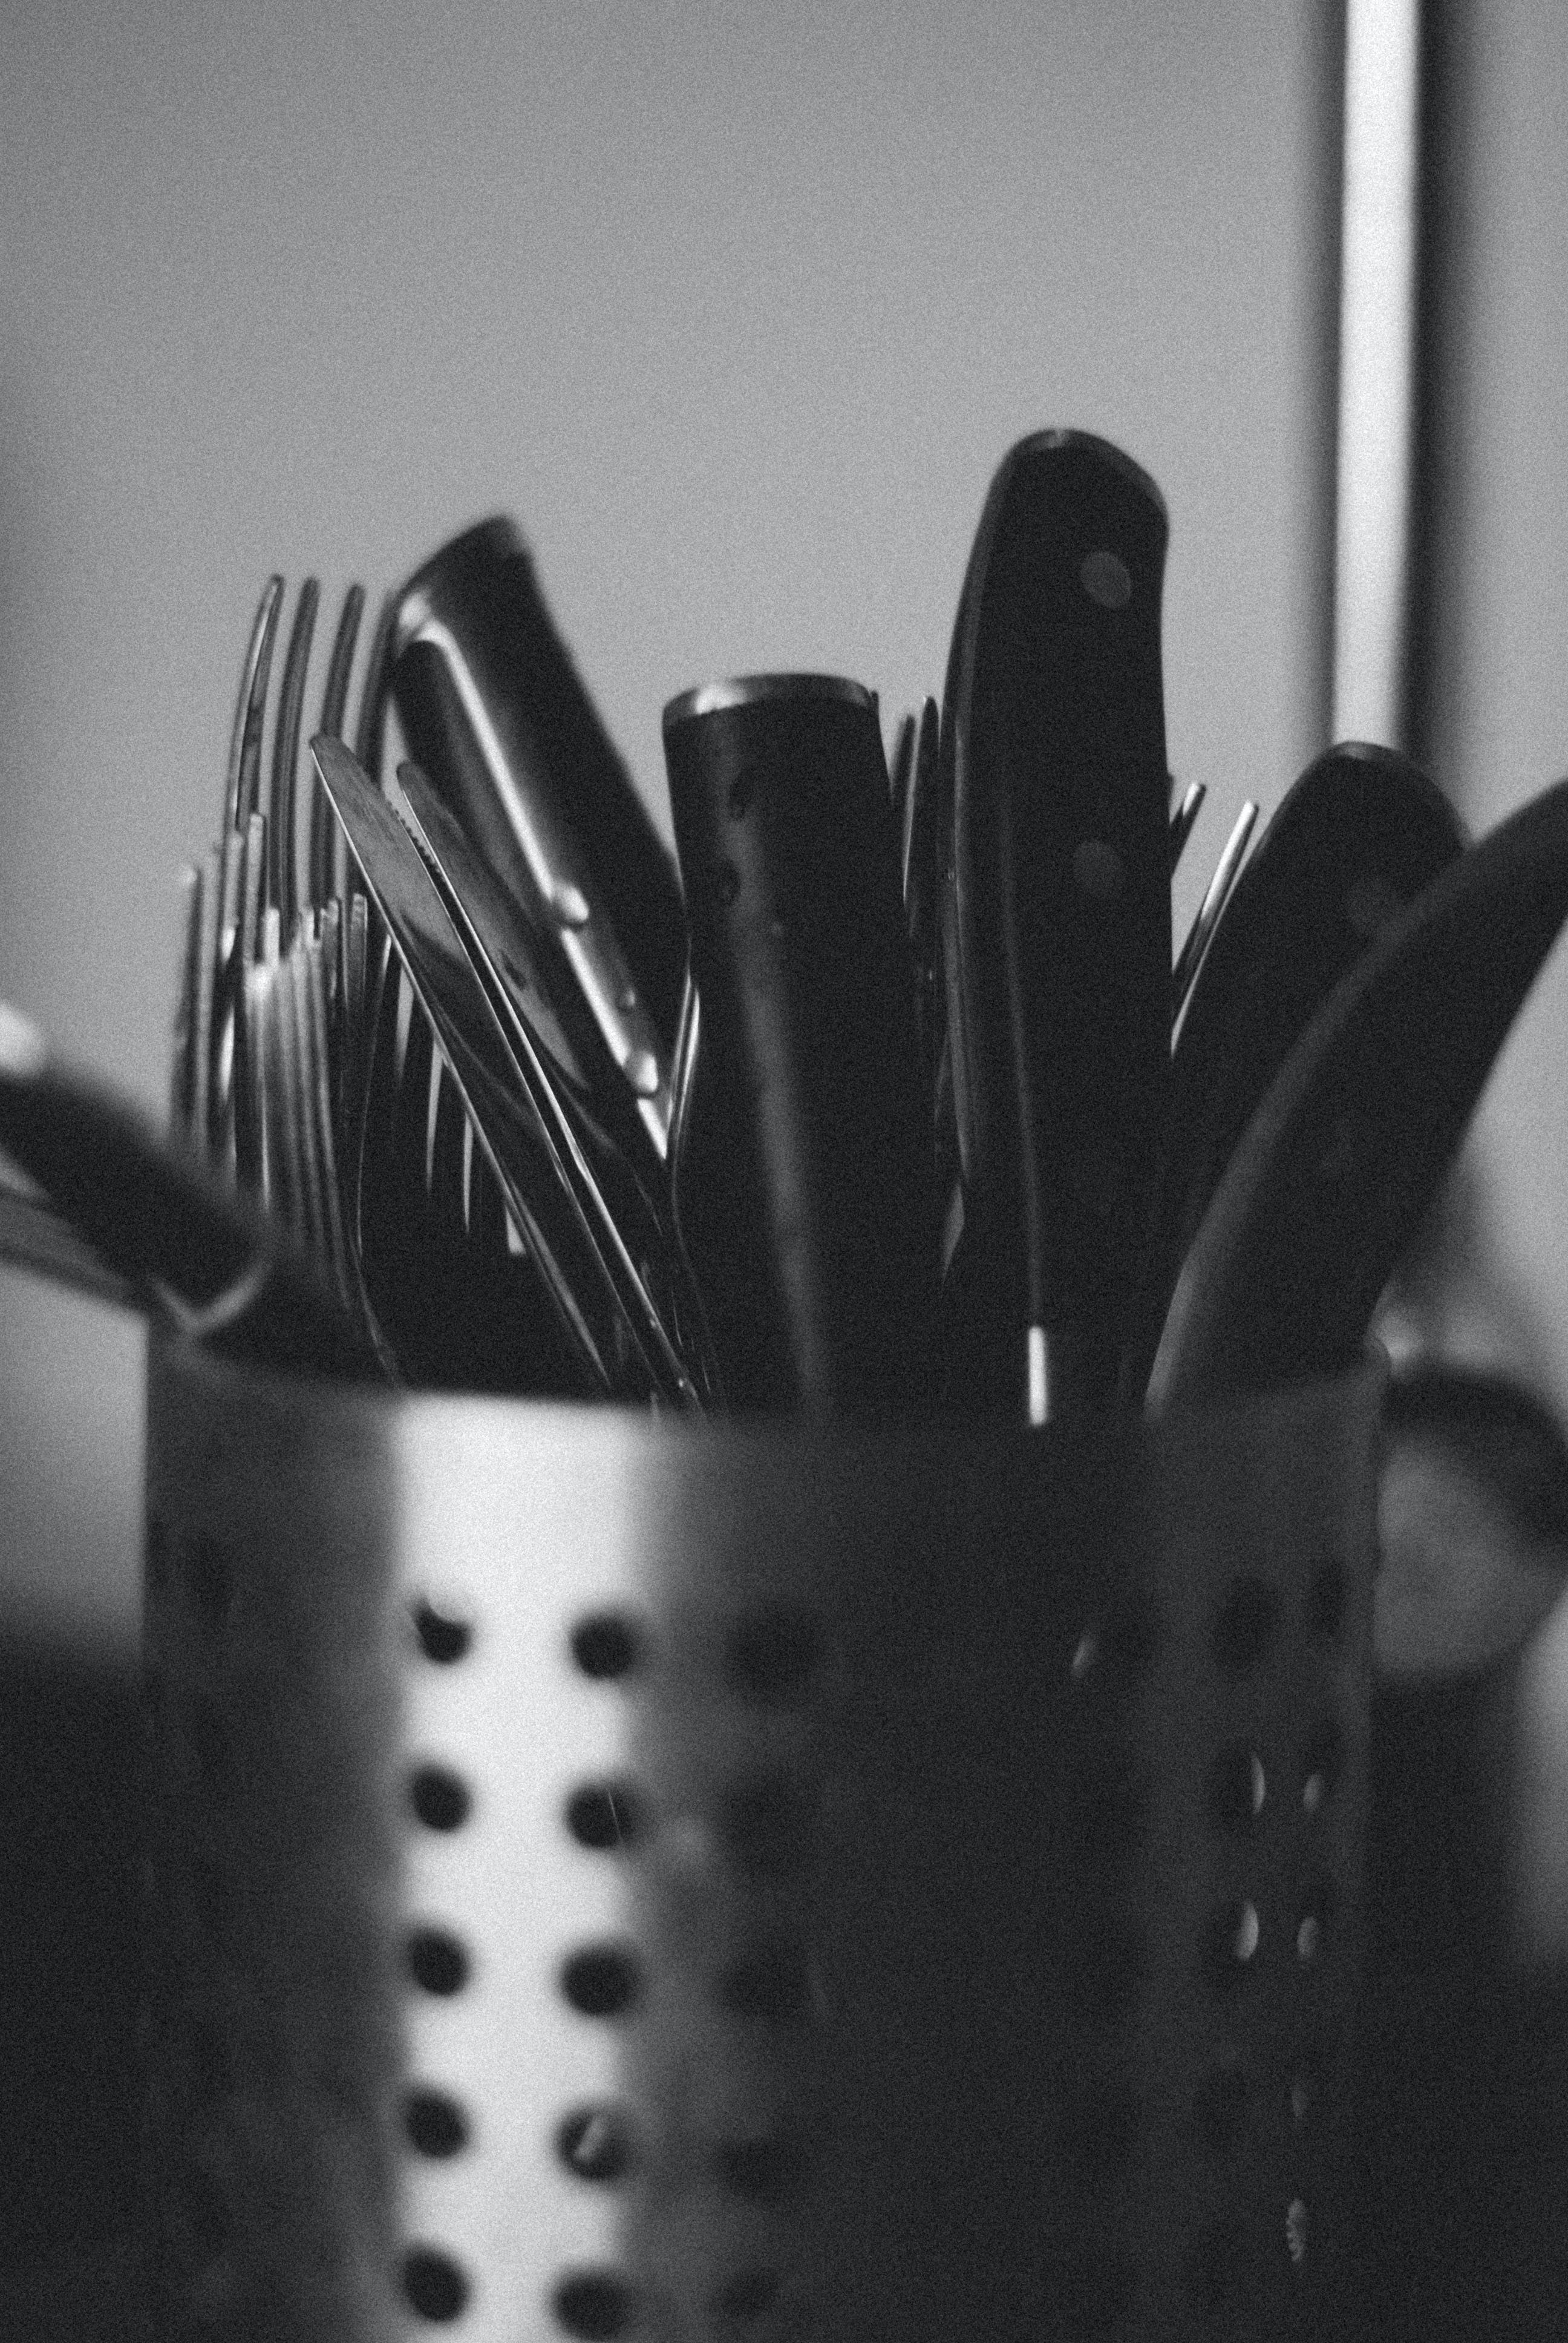 Free stock photo of spoon, knife, fork, cutlery